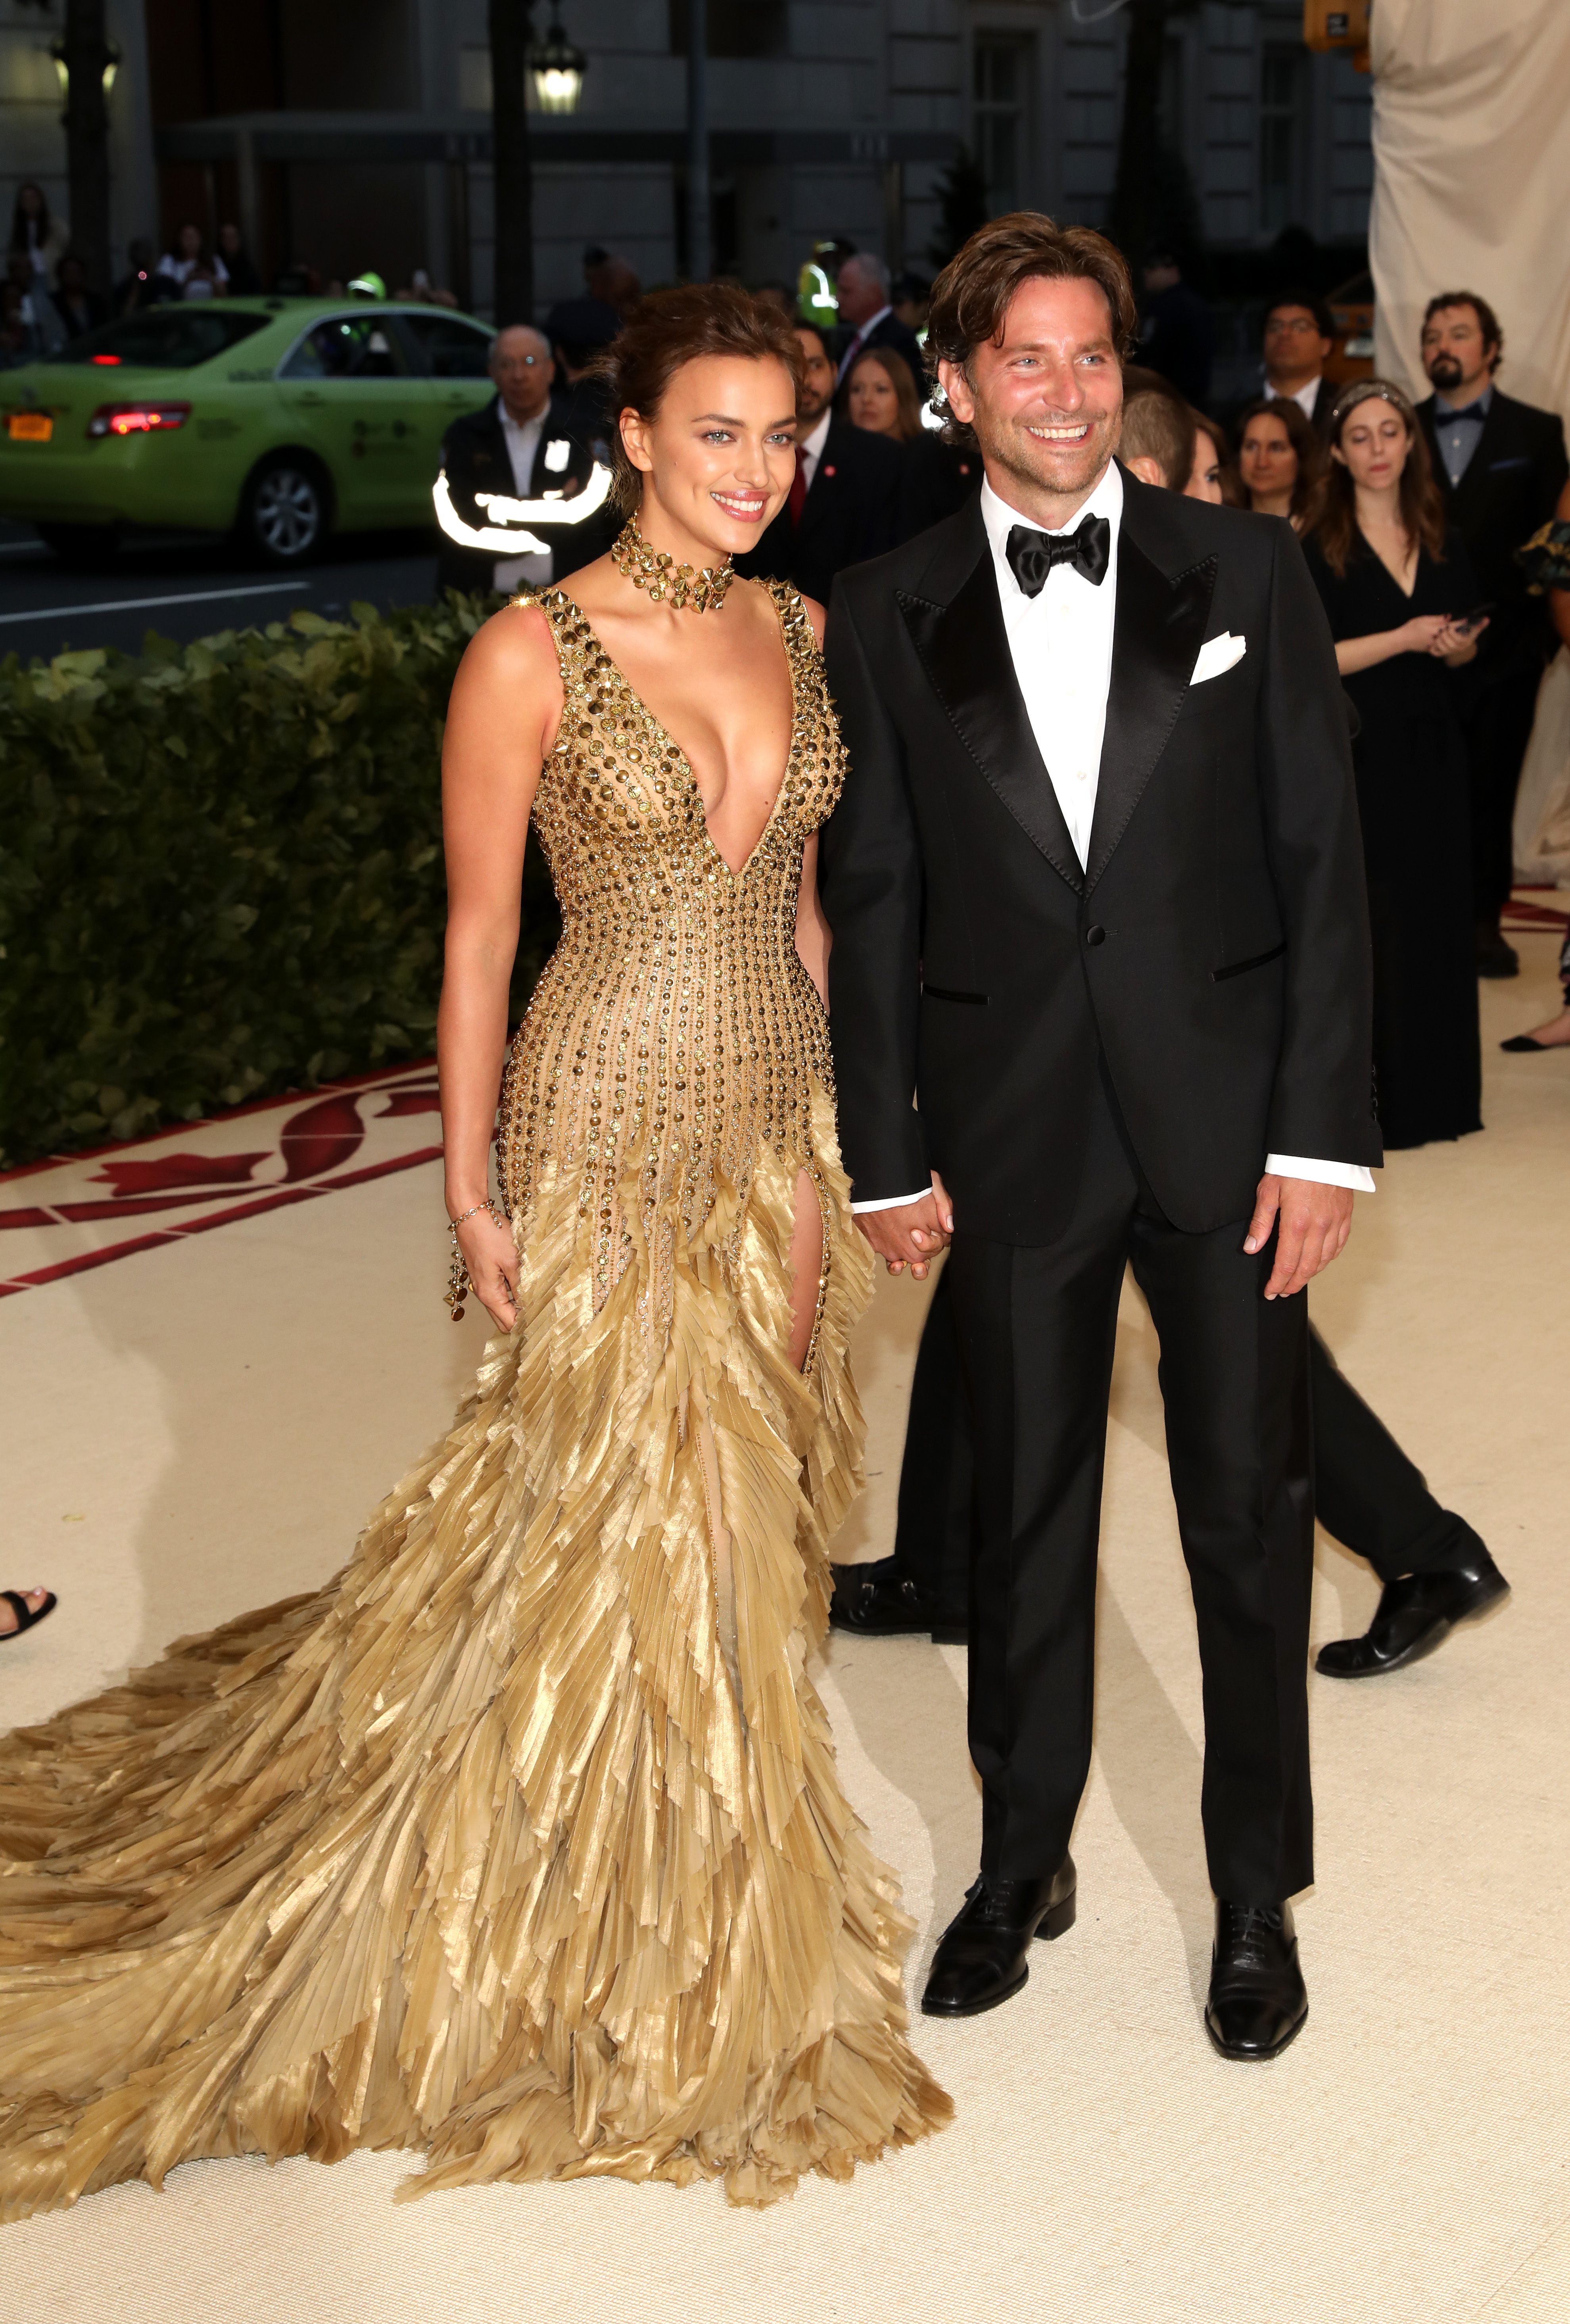 Irina Shayk and Bradley Cooper attend The Metropolitan Museum of Art's Costume Institute Benefit celebrating the opening of Heavenly Bodies: Fashion and the Catholic Imagination in New York City on May 7, 2018.